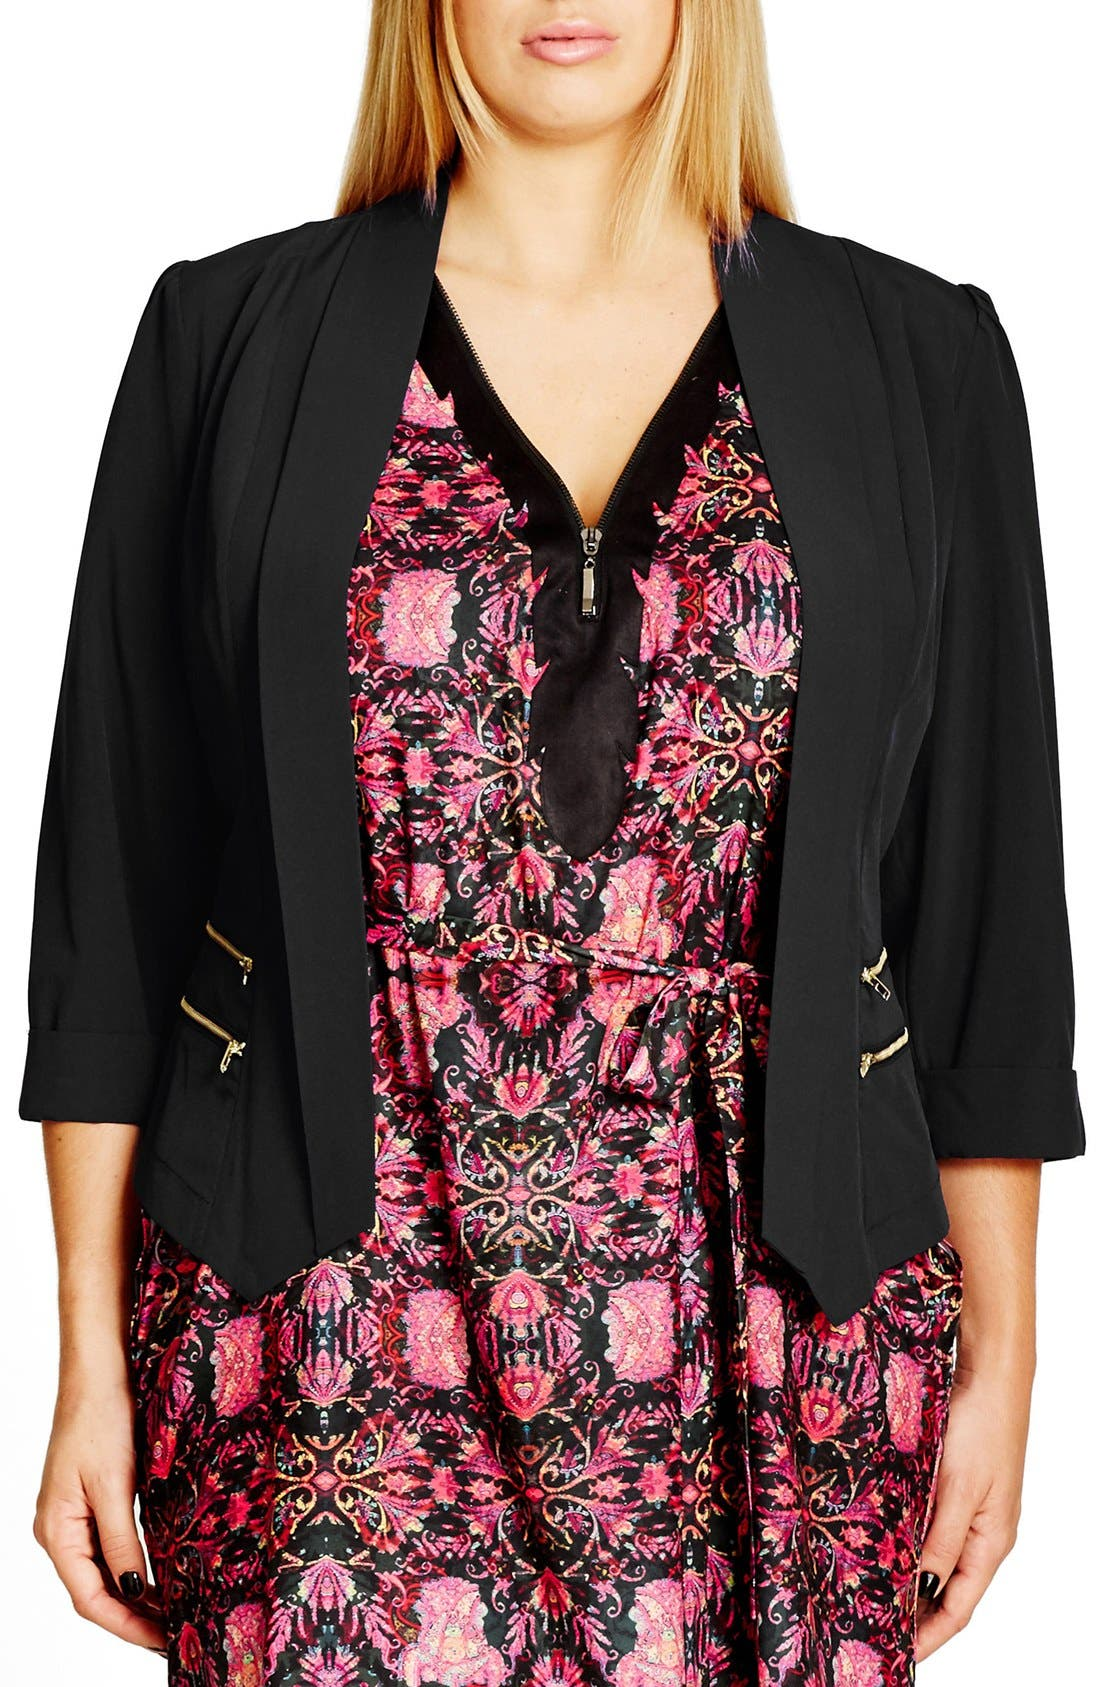 Alternate Image 1 Selected - City Chic Double Zip Jacket (Plus Size)